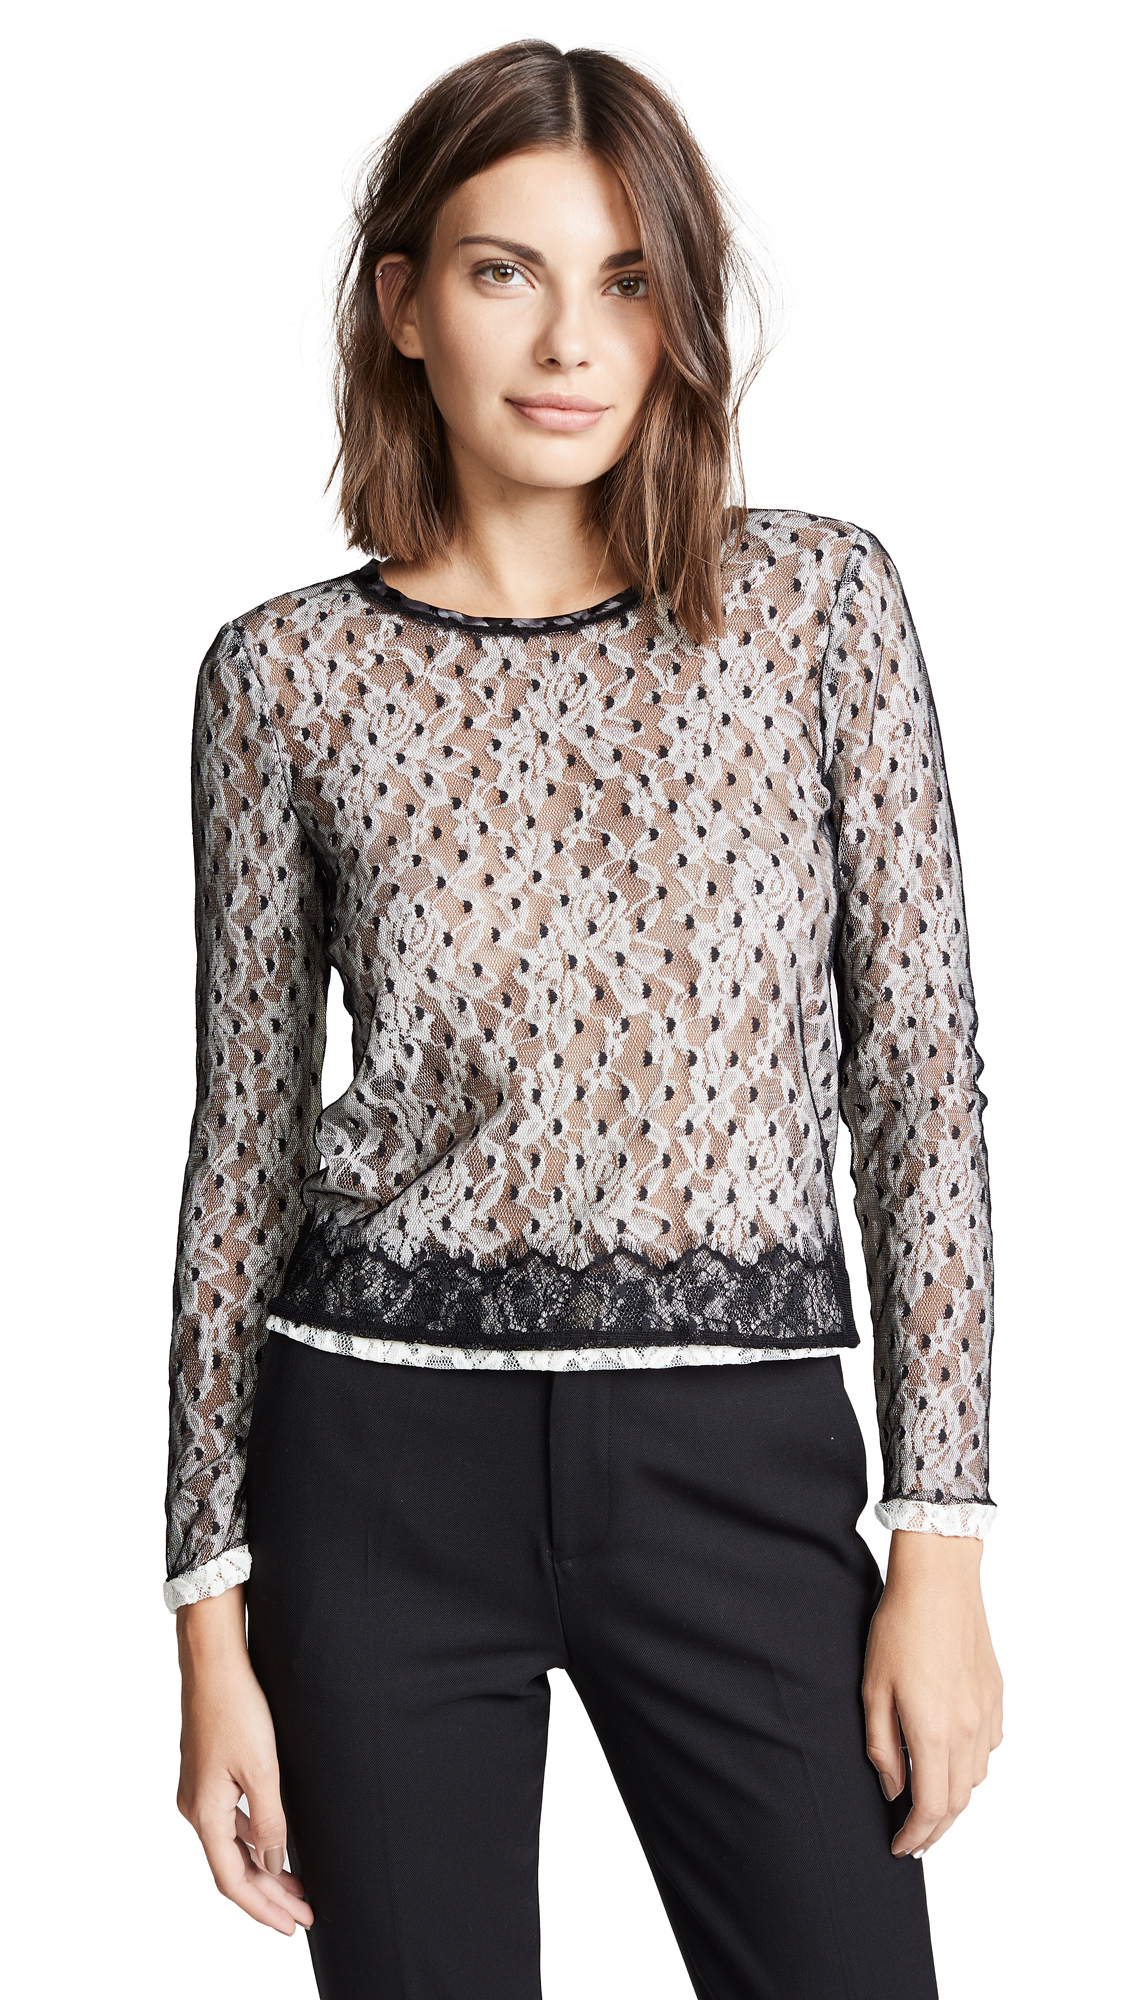 LOYD/FORD Multi Layer Dot Mesh Top in Black